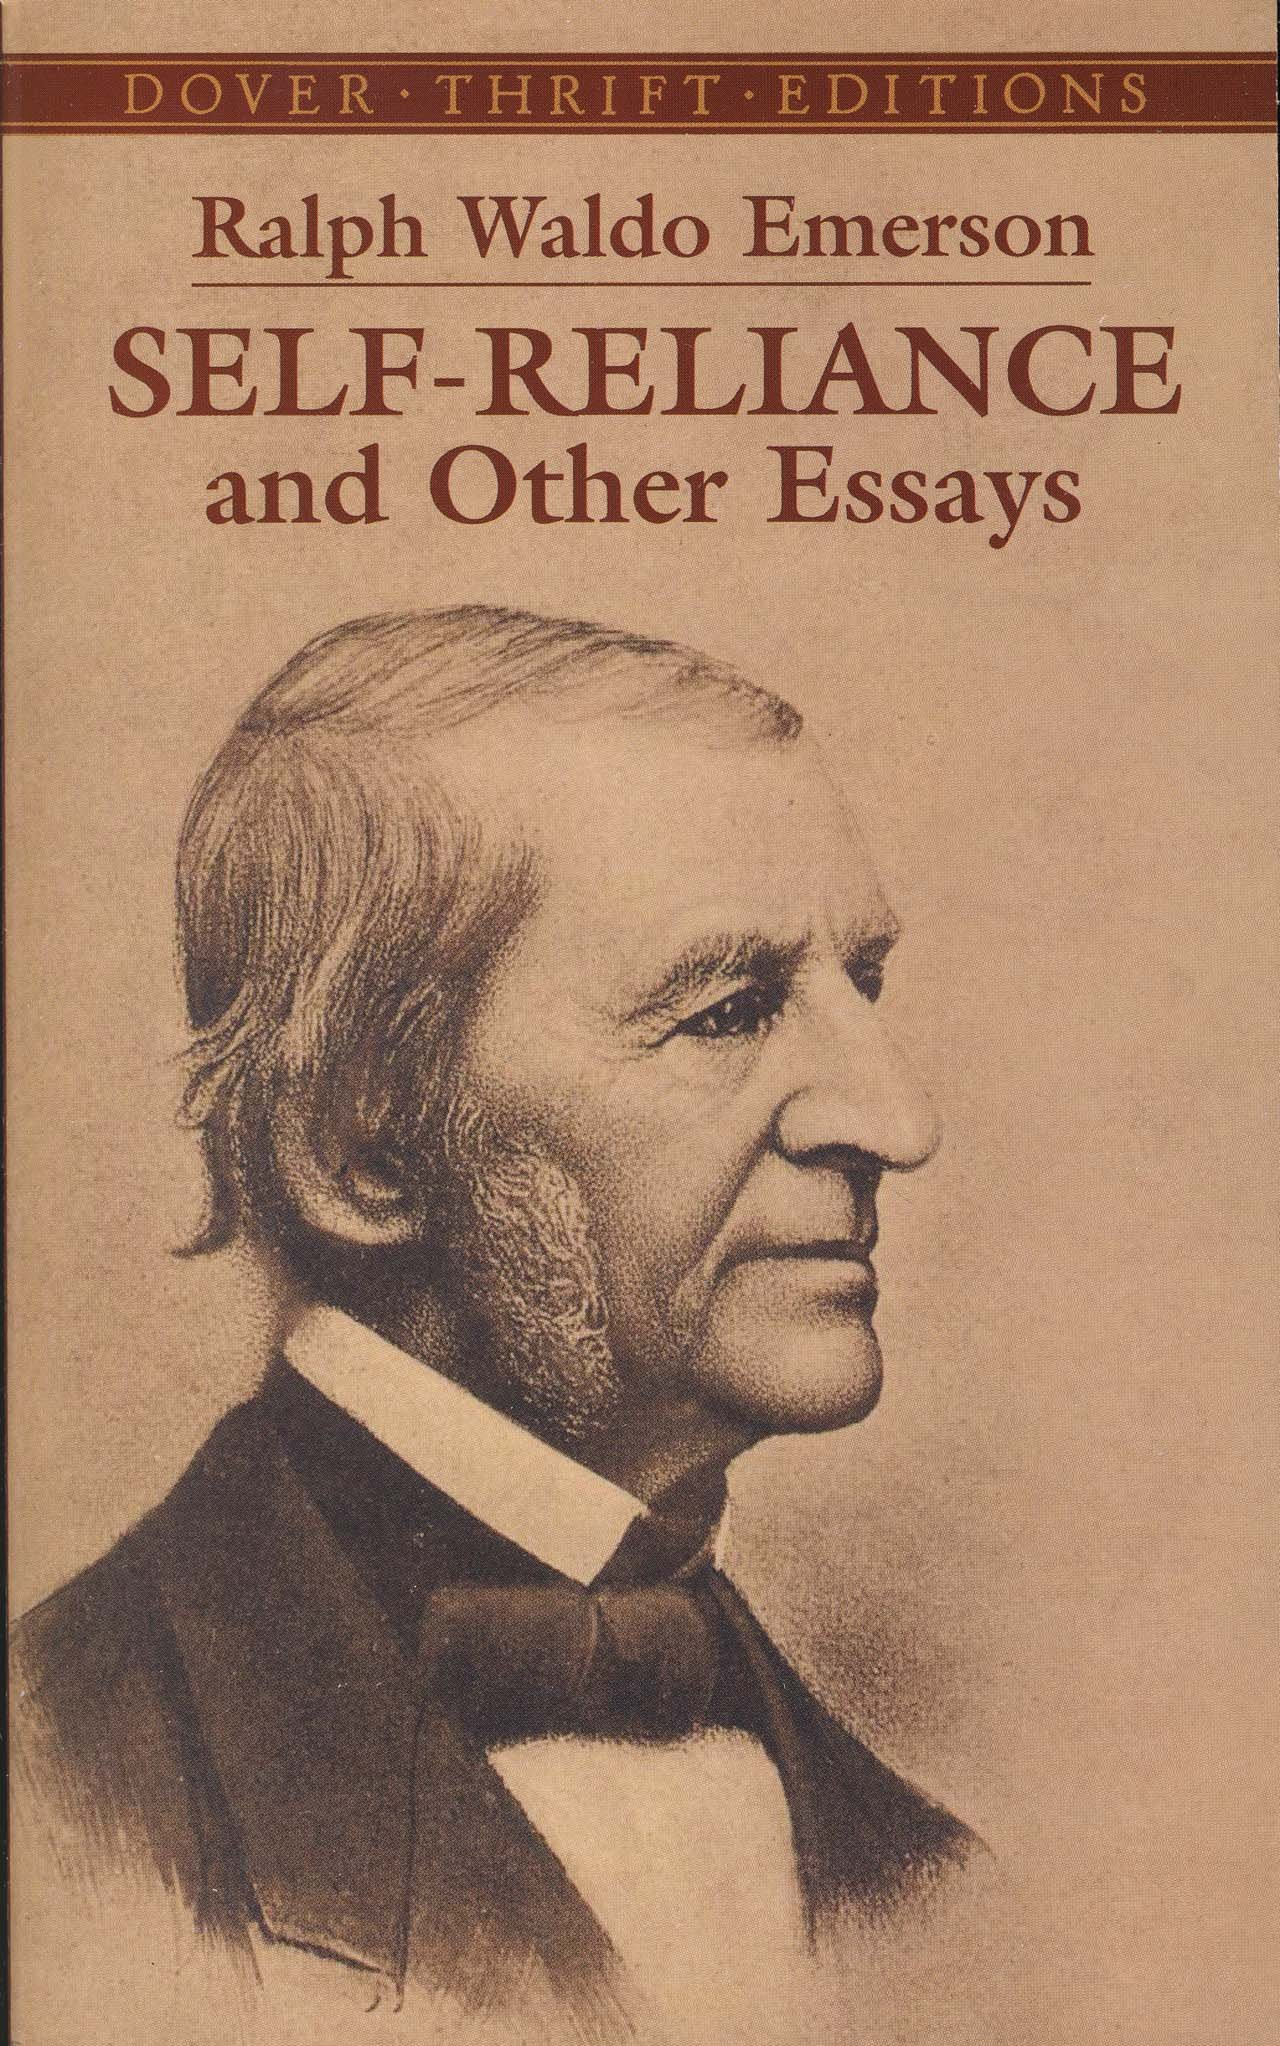 self reliance and other essays dover thrift editions ralph self reliance and other essays dover thrift editions ralph waldo emerson 9780486277905 com books